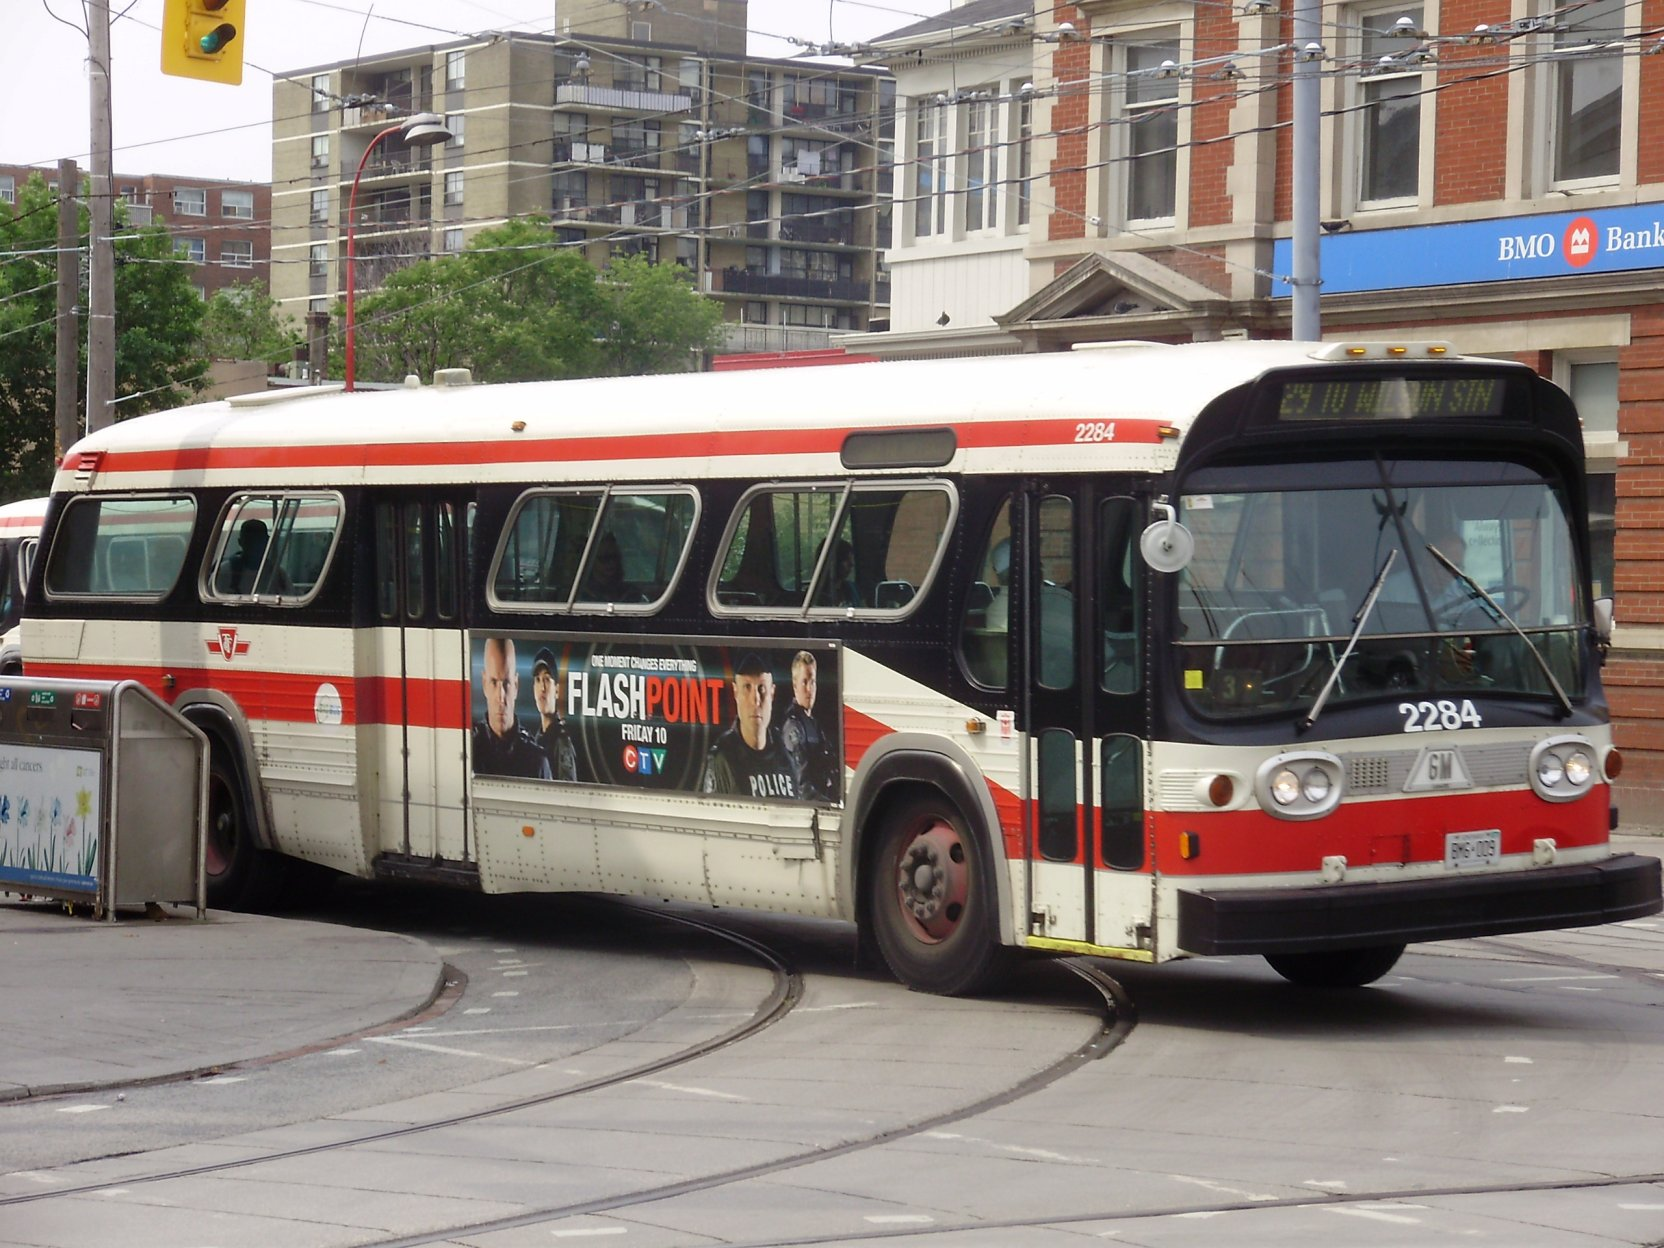 File:TTC T6H 5307N Bus 2284.jpg